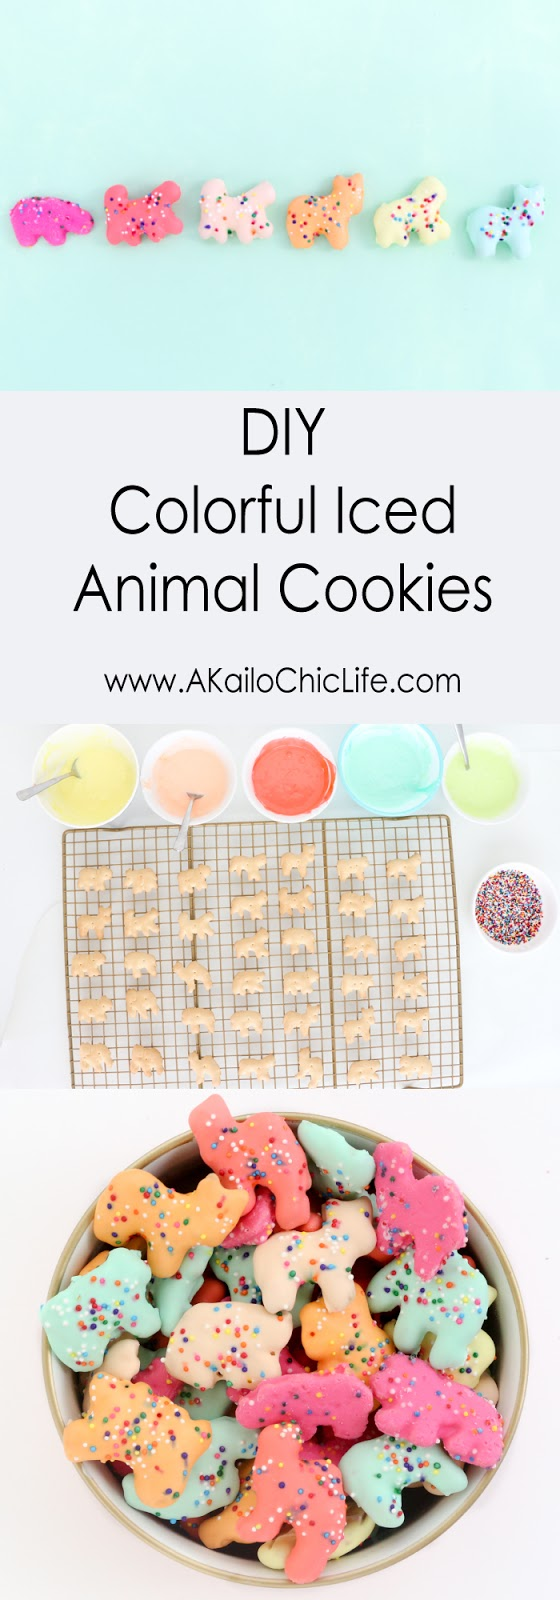 DIY Colorful Rainbow iced animal cookies - how to make your own colorful circus animal cookies for a birthday party or Christmas cookie exchange